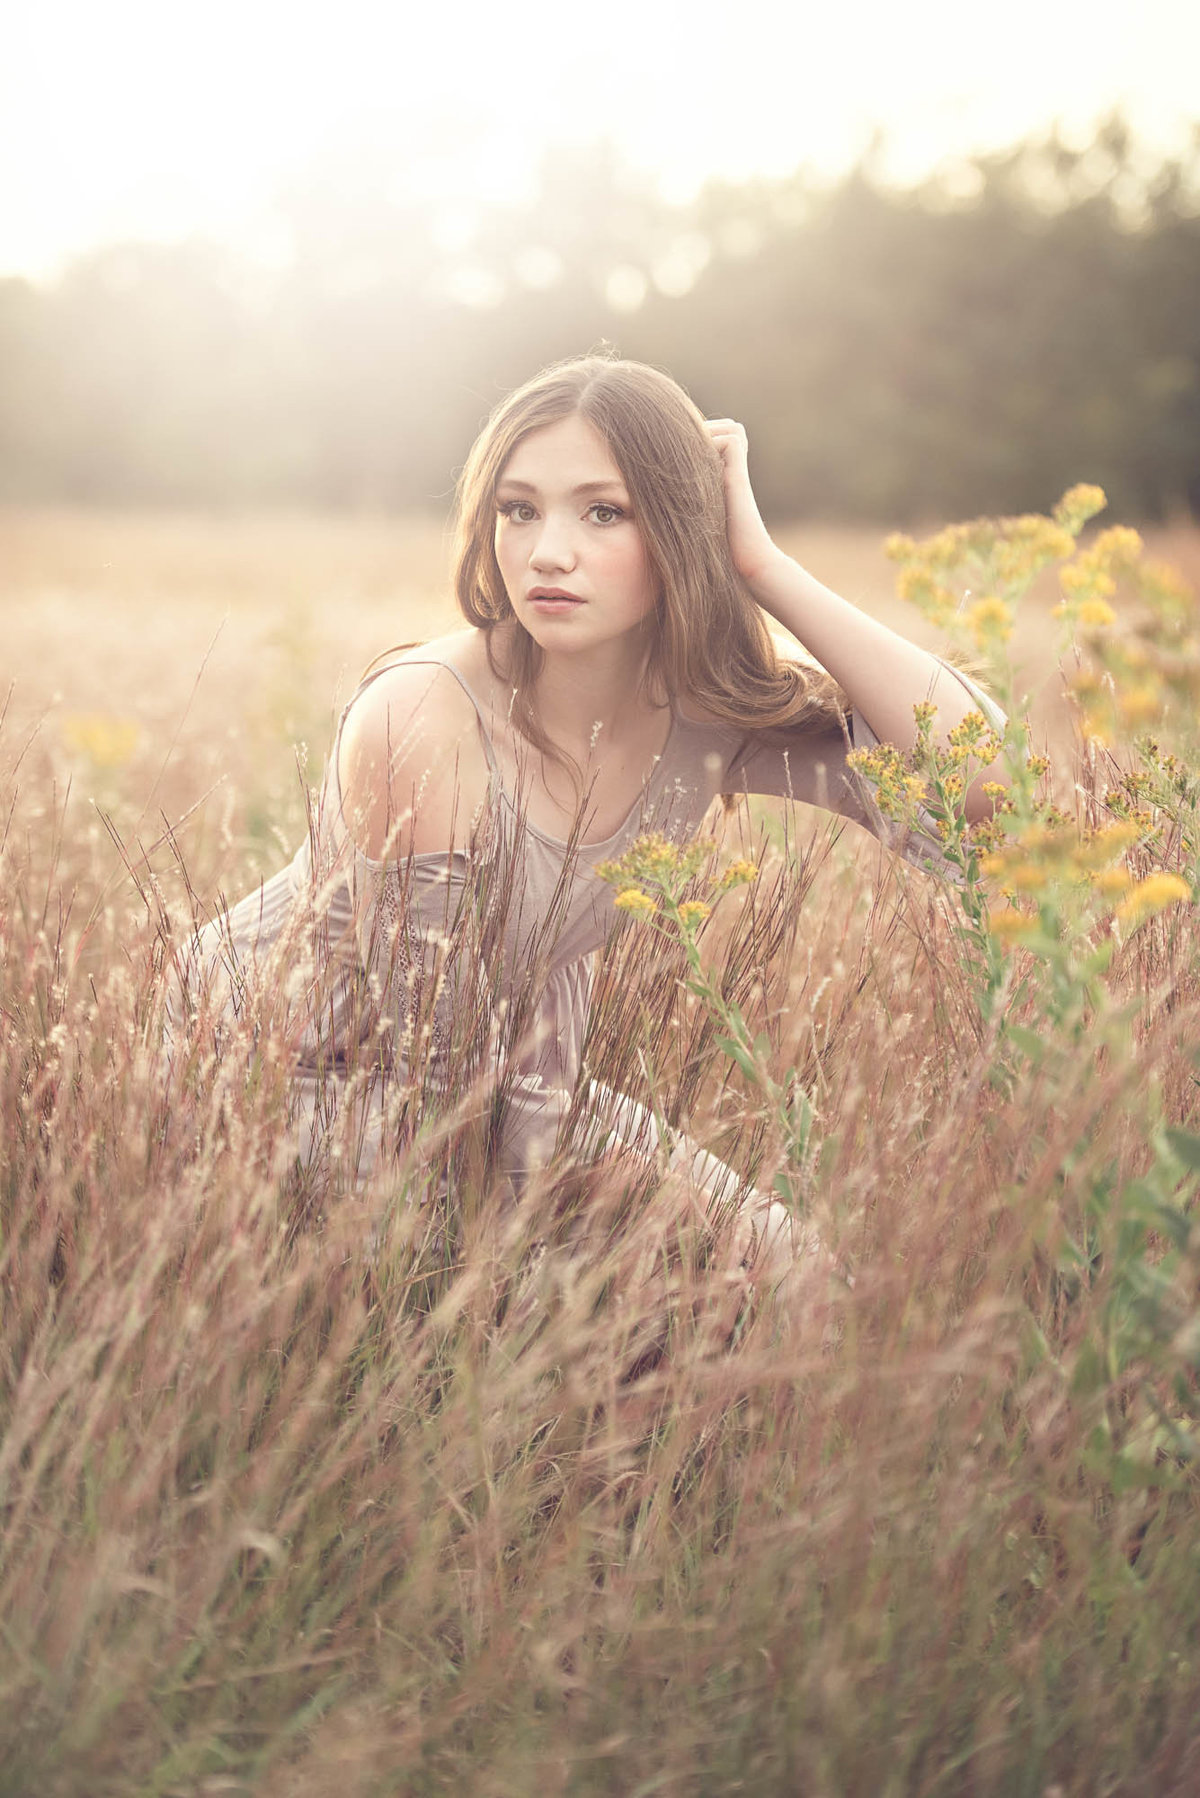 modern senior pictures in field of flowers minnesota photographer4